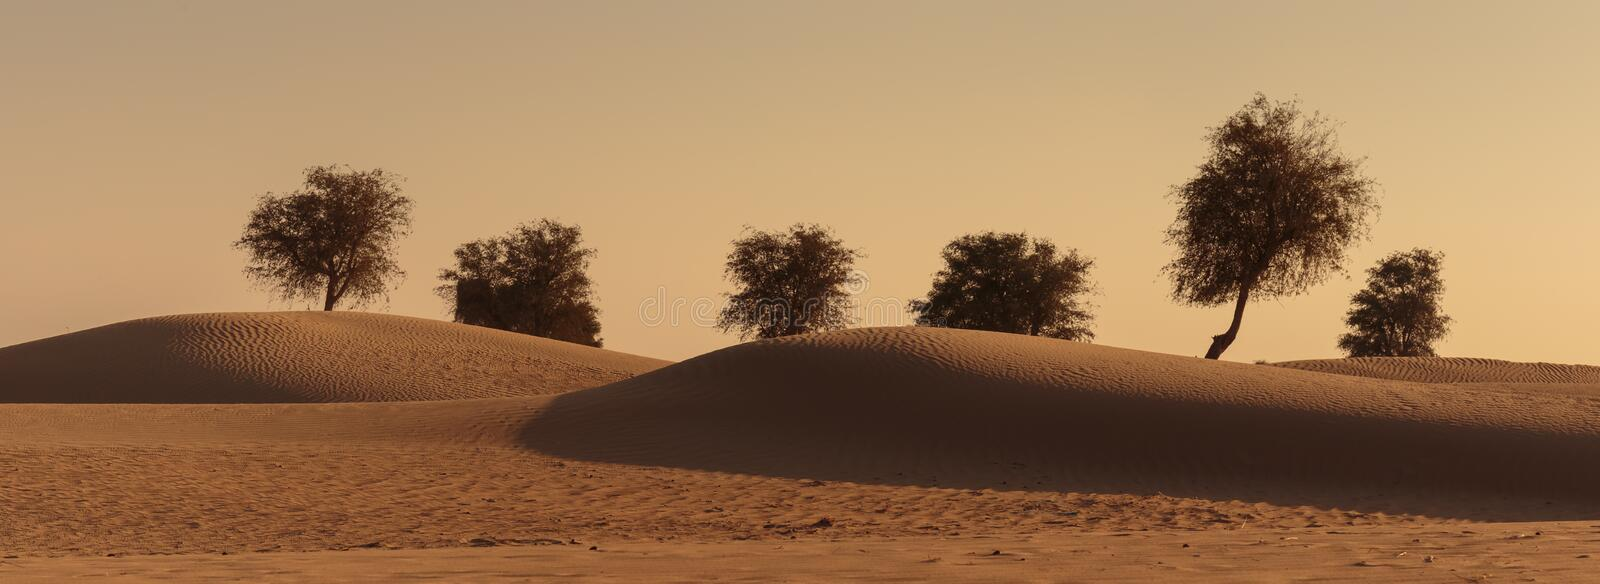 Sunset in the Arabian desert royalty free stock images